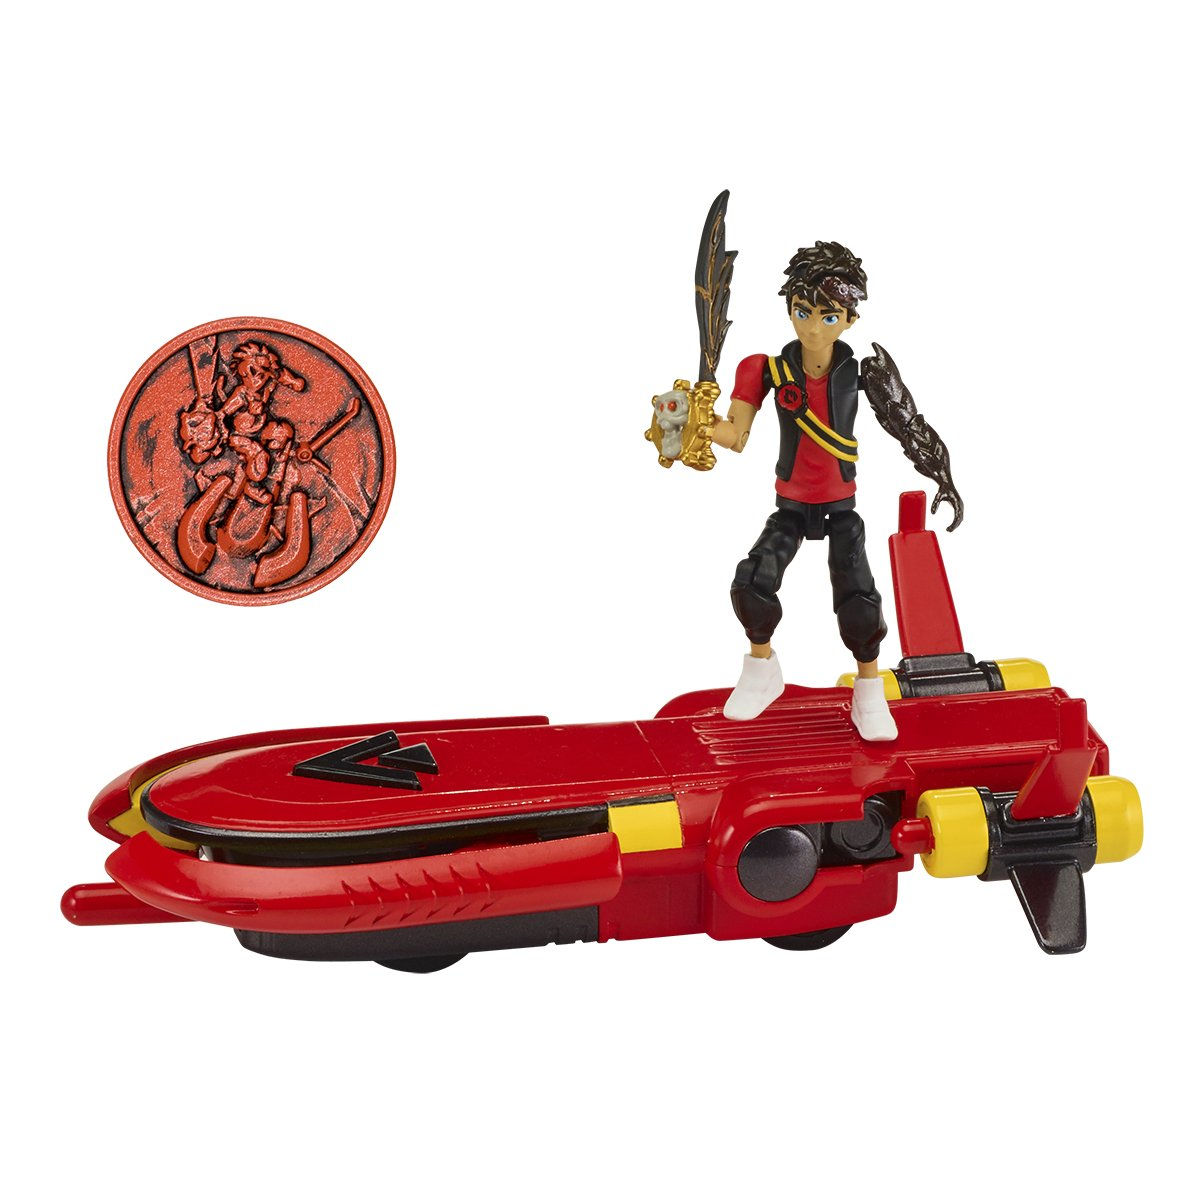 Bandai 41585 Zak Storm Hover Vehicle and Coin